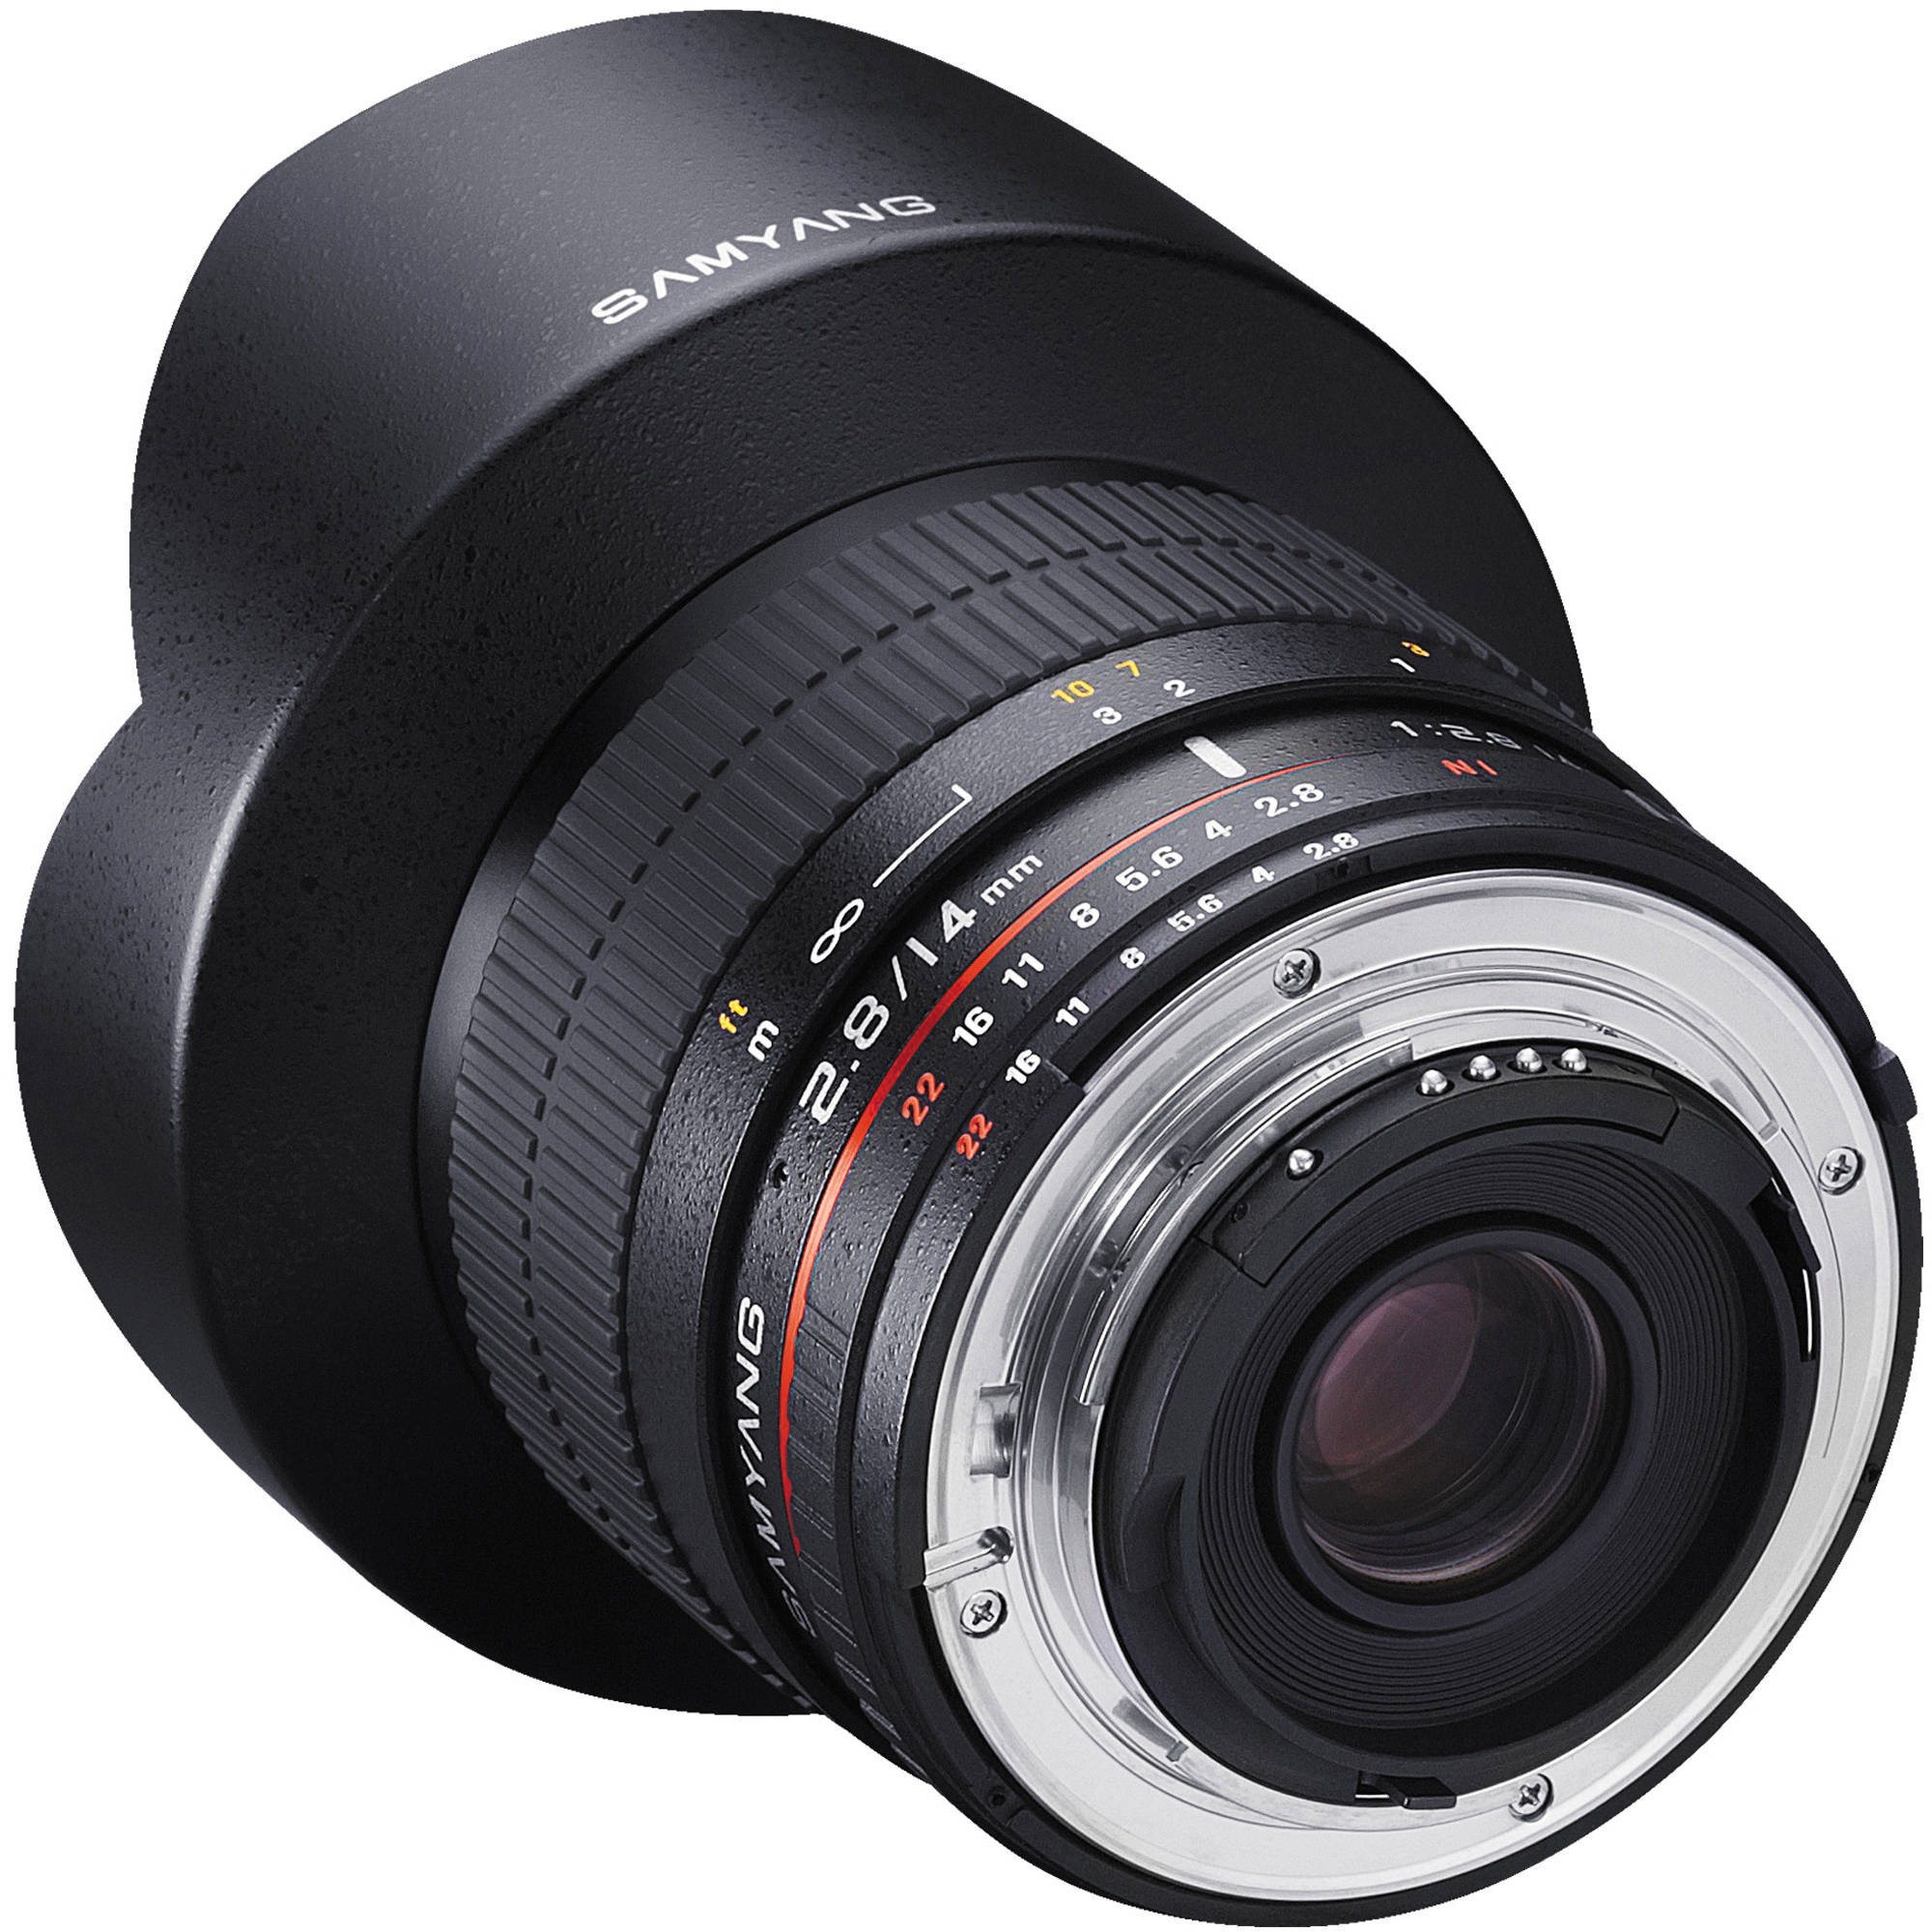 Samyang's model of the same lens with the mount shown.